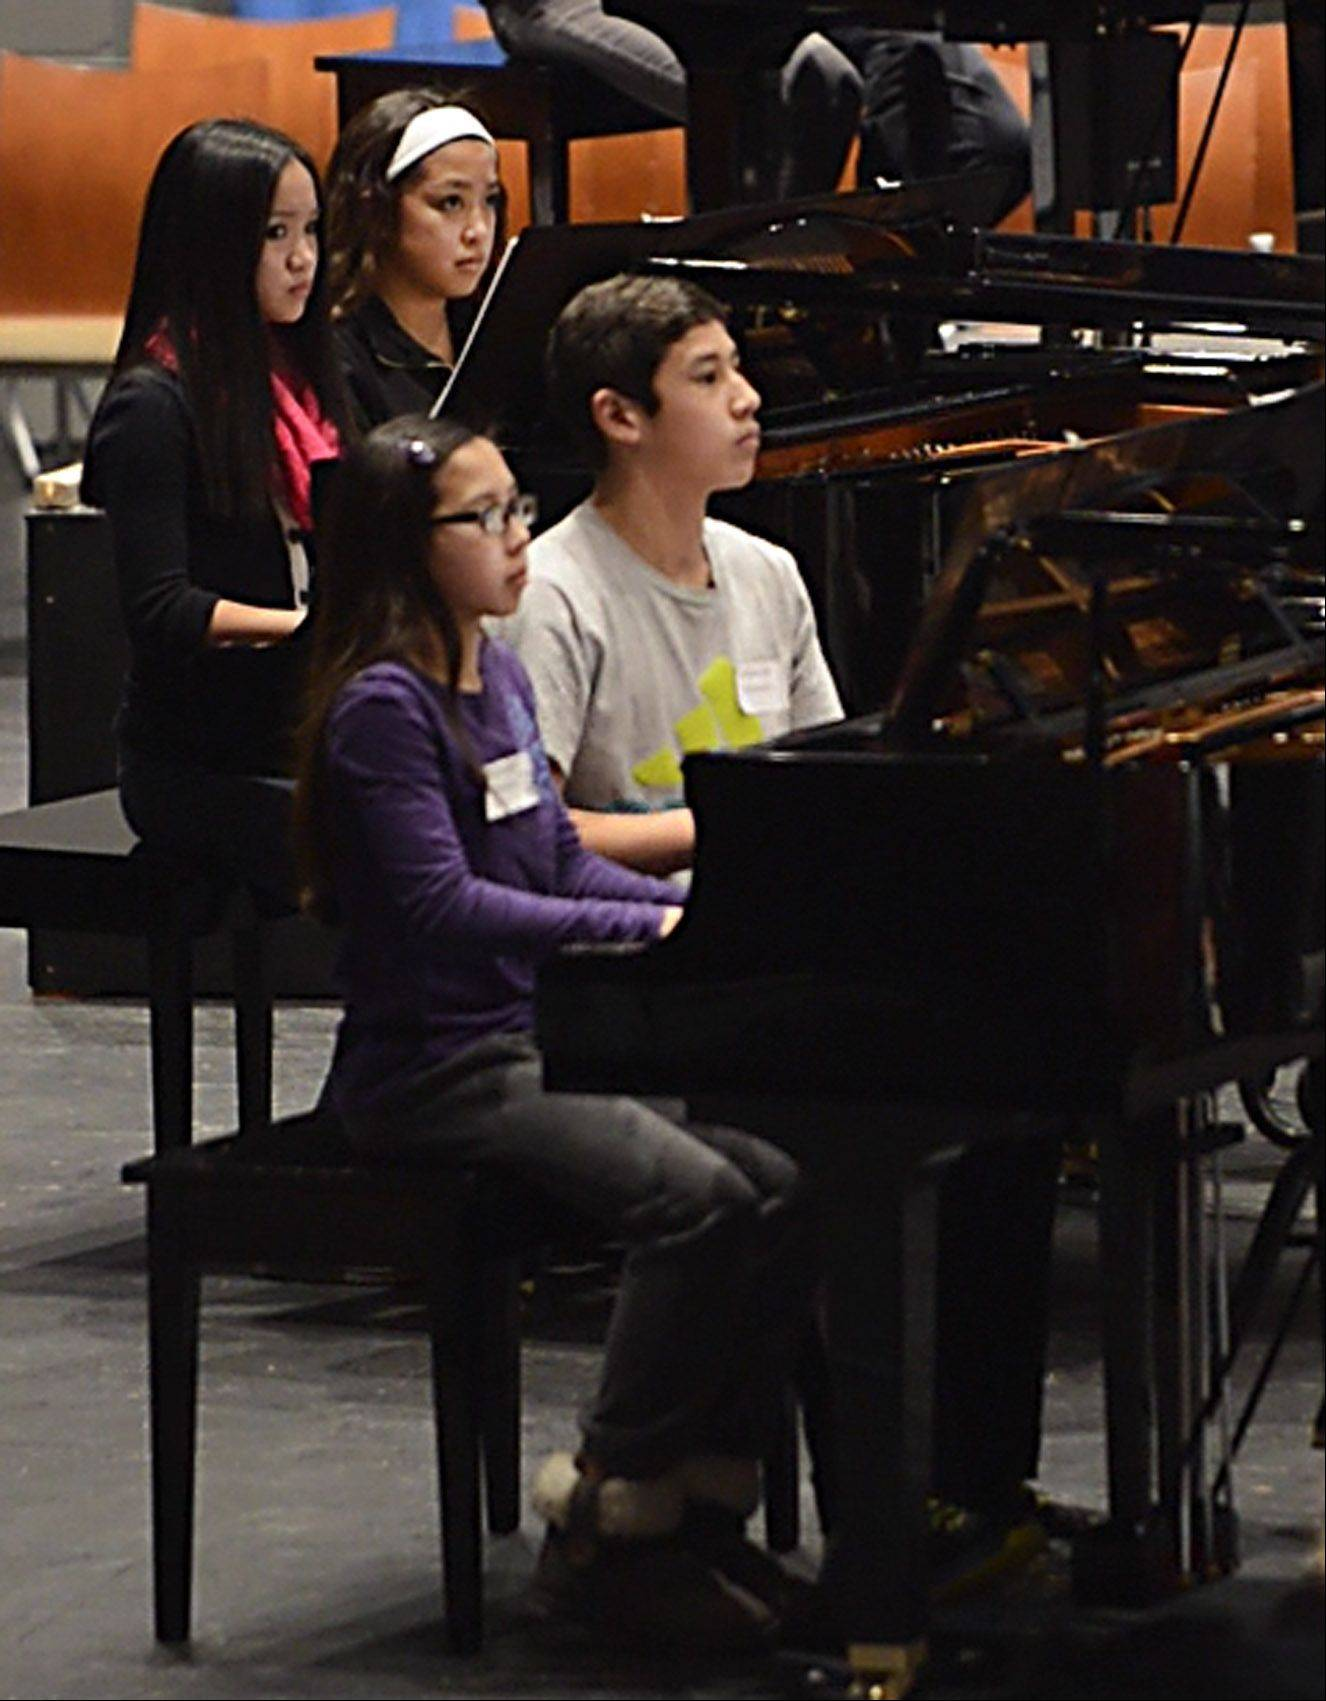 Siblings Izabella, 11, and Jaden Del Rosario, 12, play together as their cousin Ashriel Del Rosario, 12, rehearses on another grand piano for the American Grands XIX concerts at the Elgin Community College's Blizzard Theater.